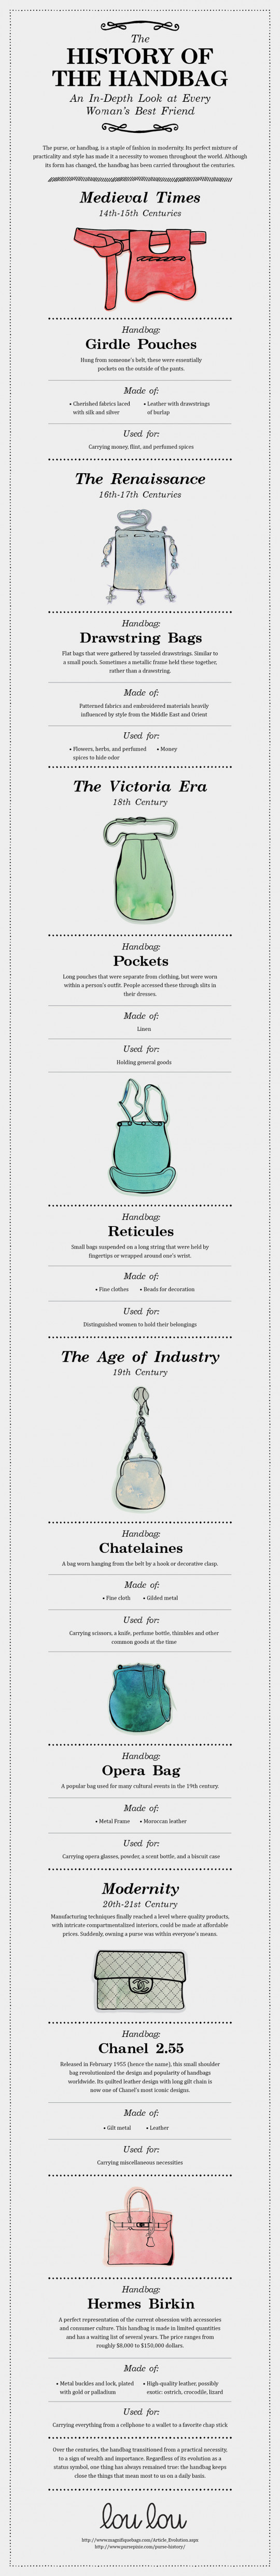 History of the Handbag